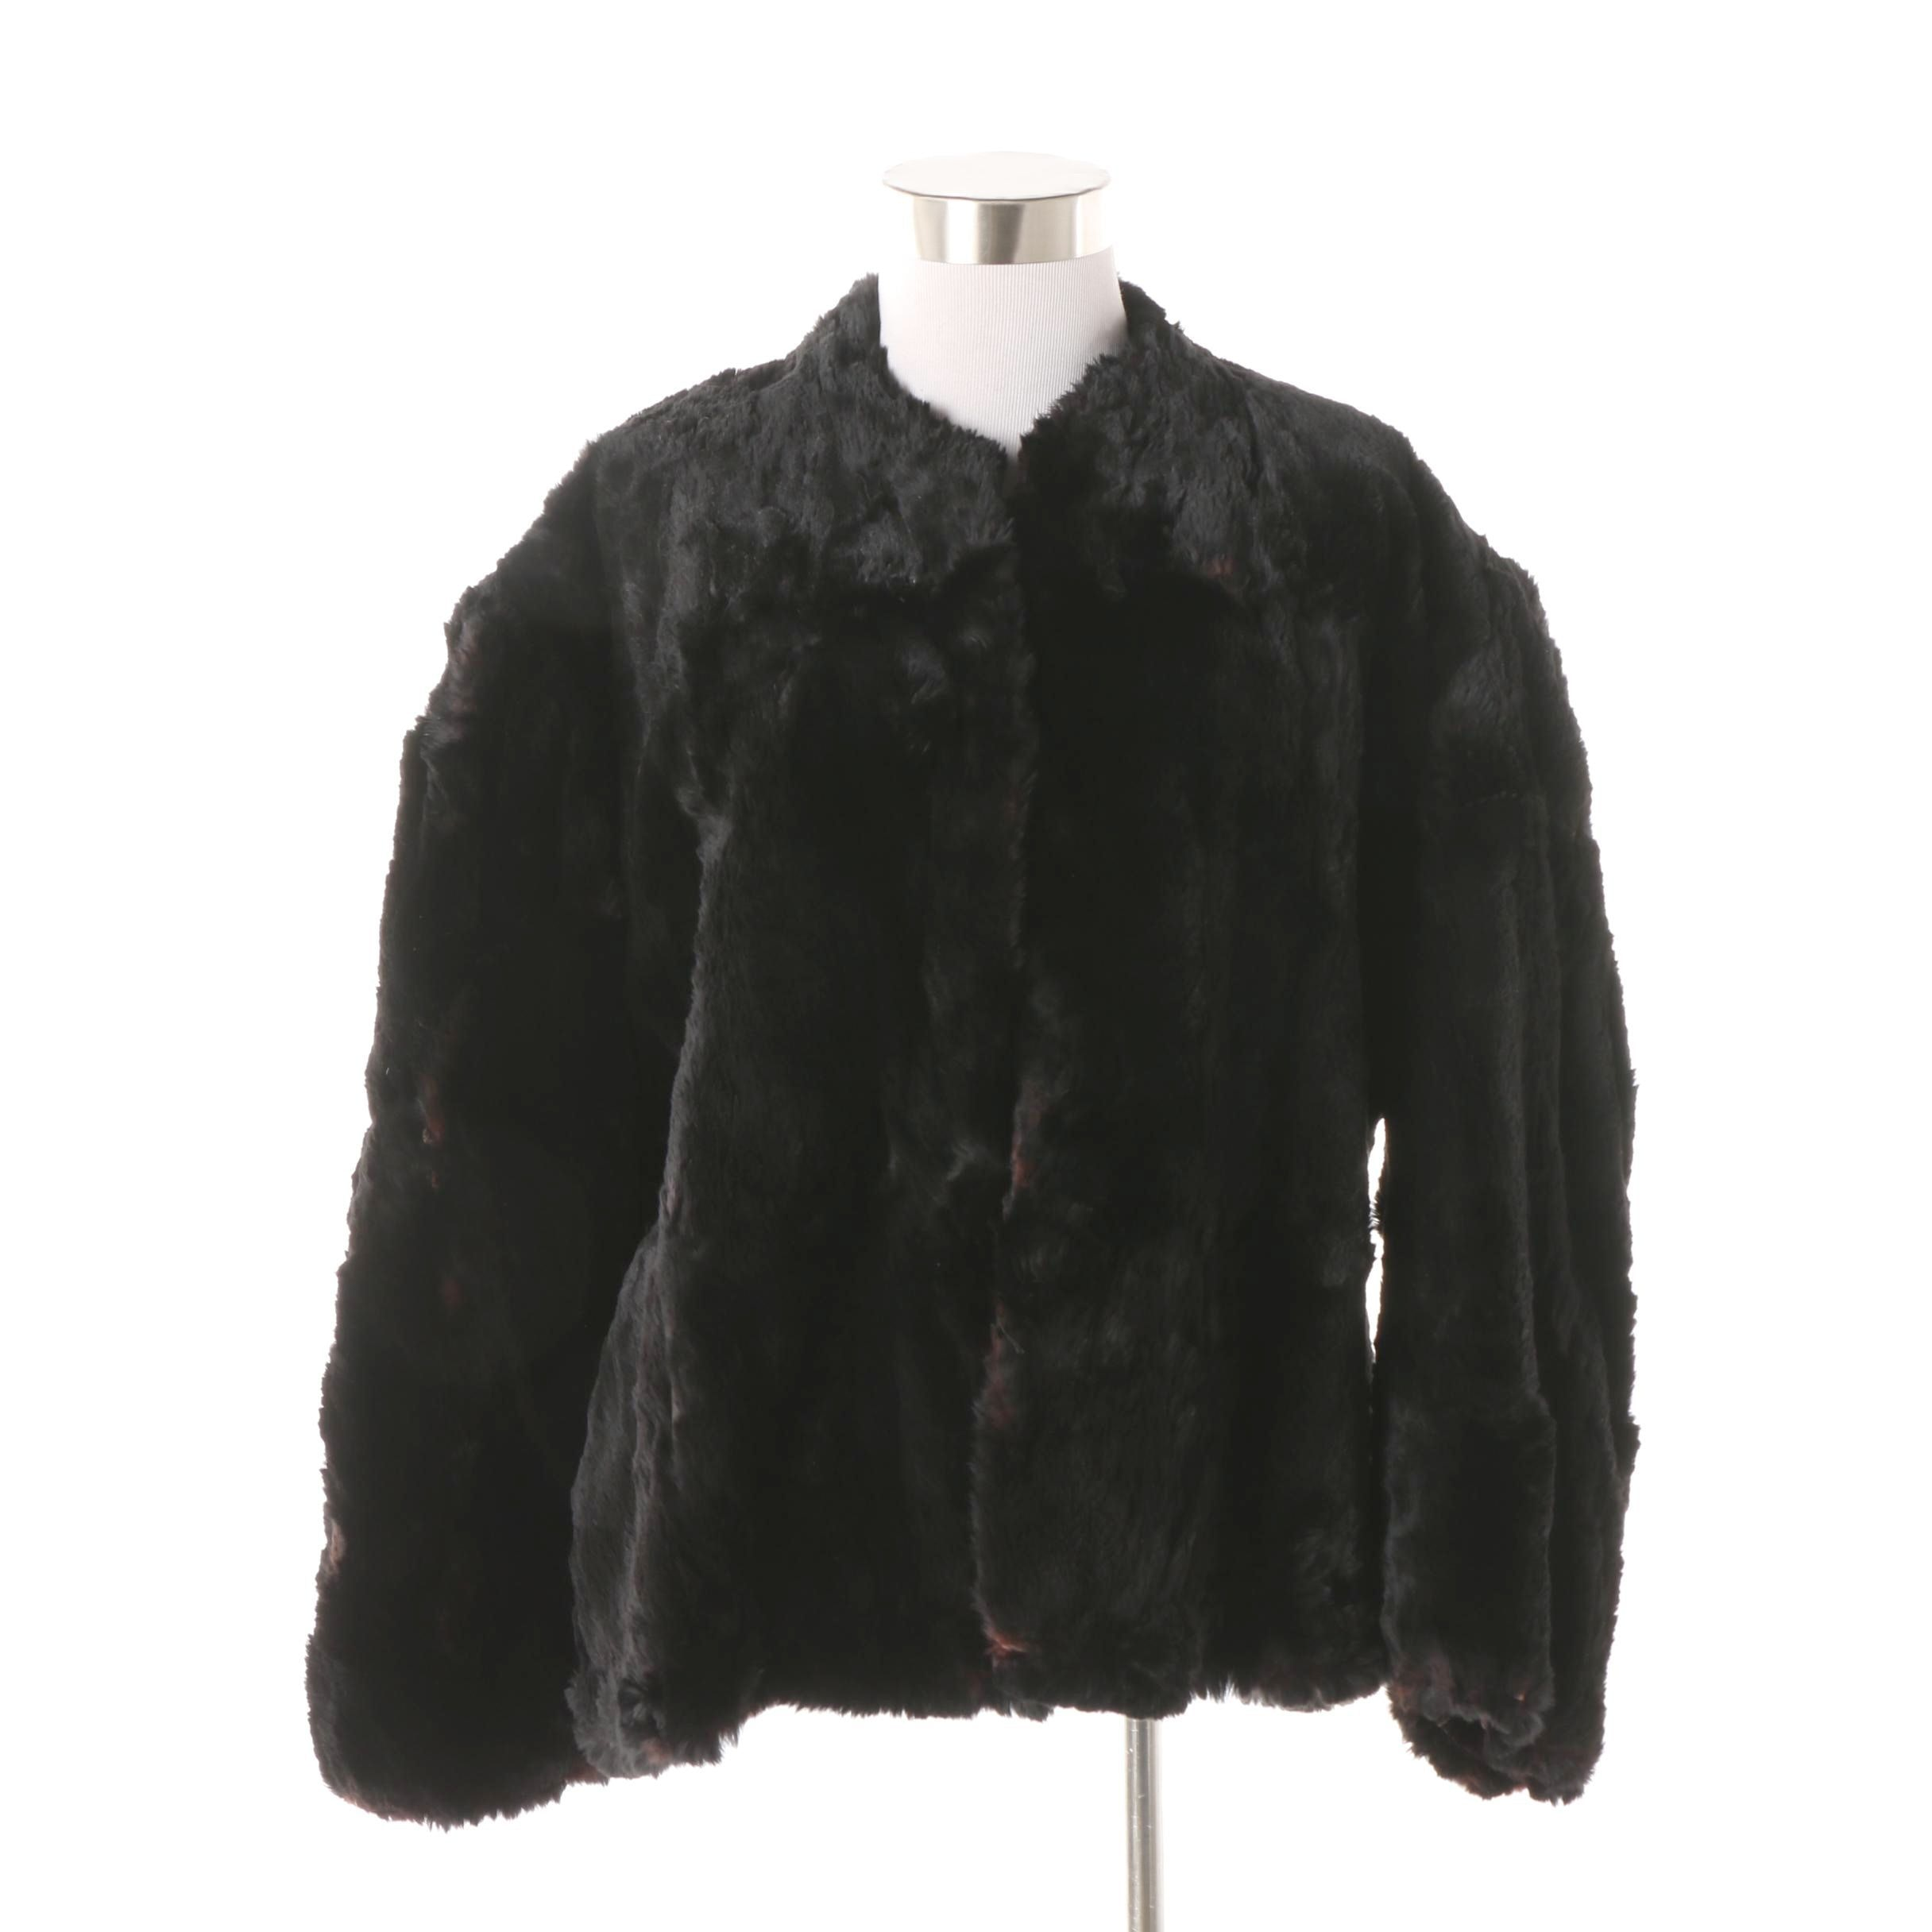 Vintage Dyed Black Sheared Beaver Fur Coat